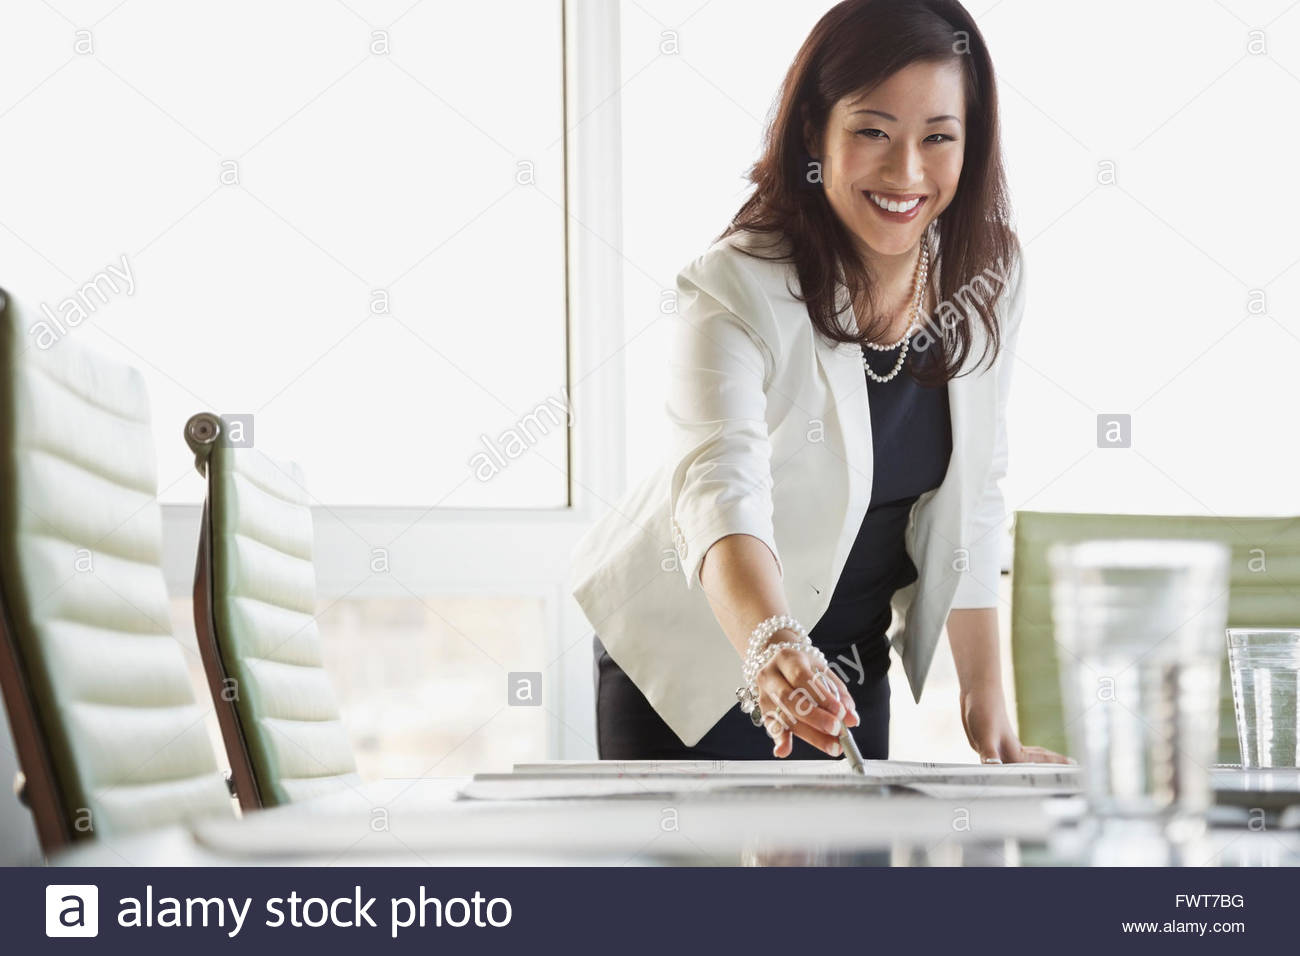 Portrait of businesswoman reviewing blueprint at conference table Photo Stock